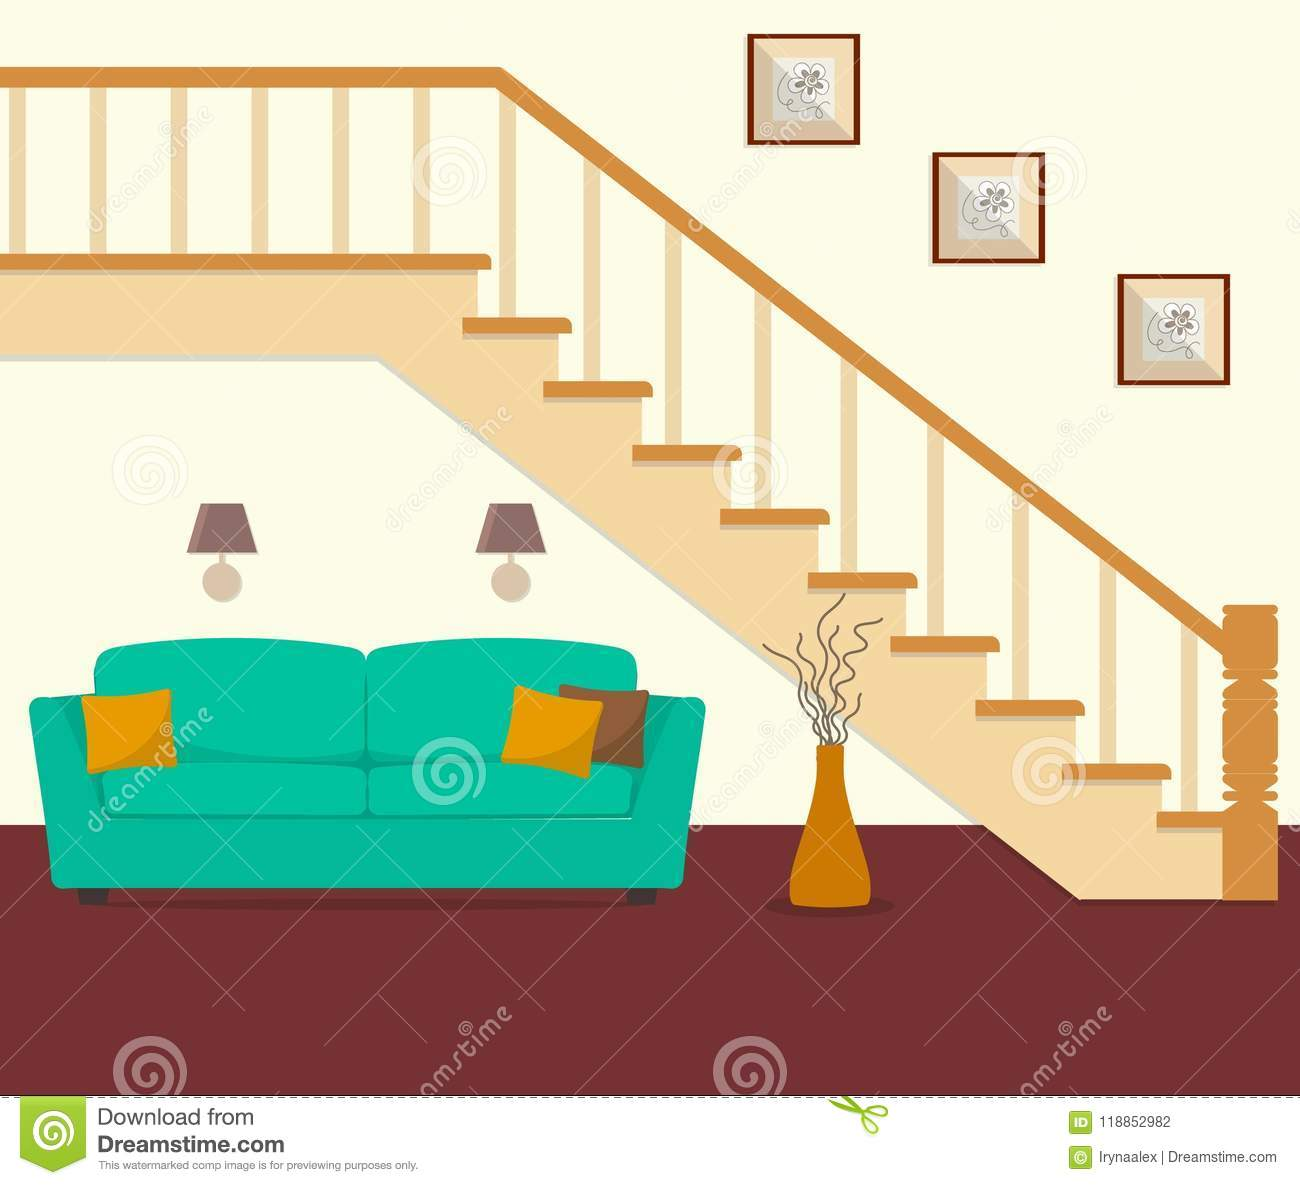 Green Sofa Located Under The Stairs Stock Vector Illustration Of